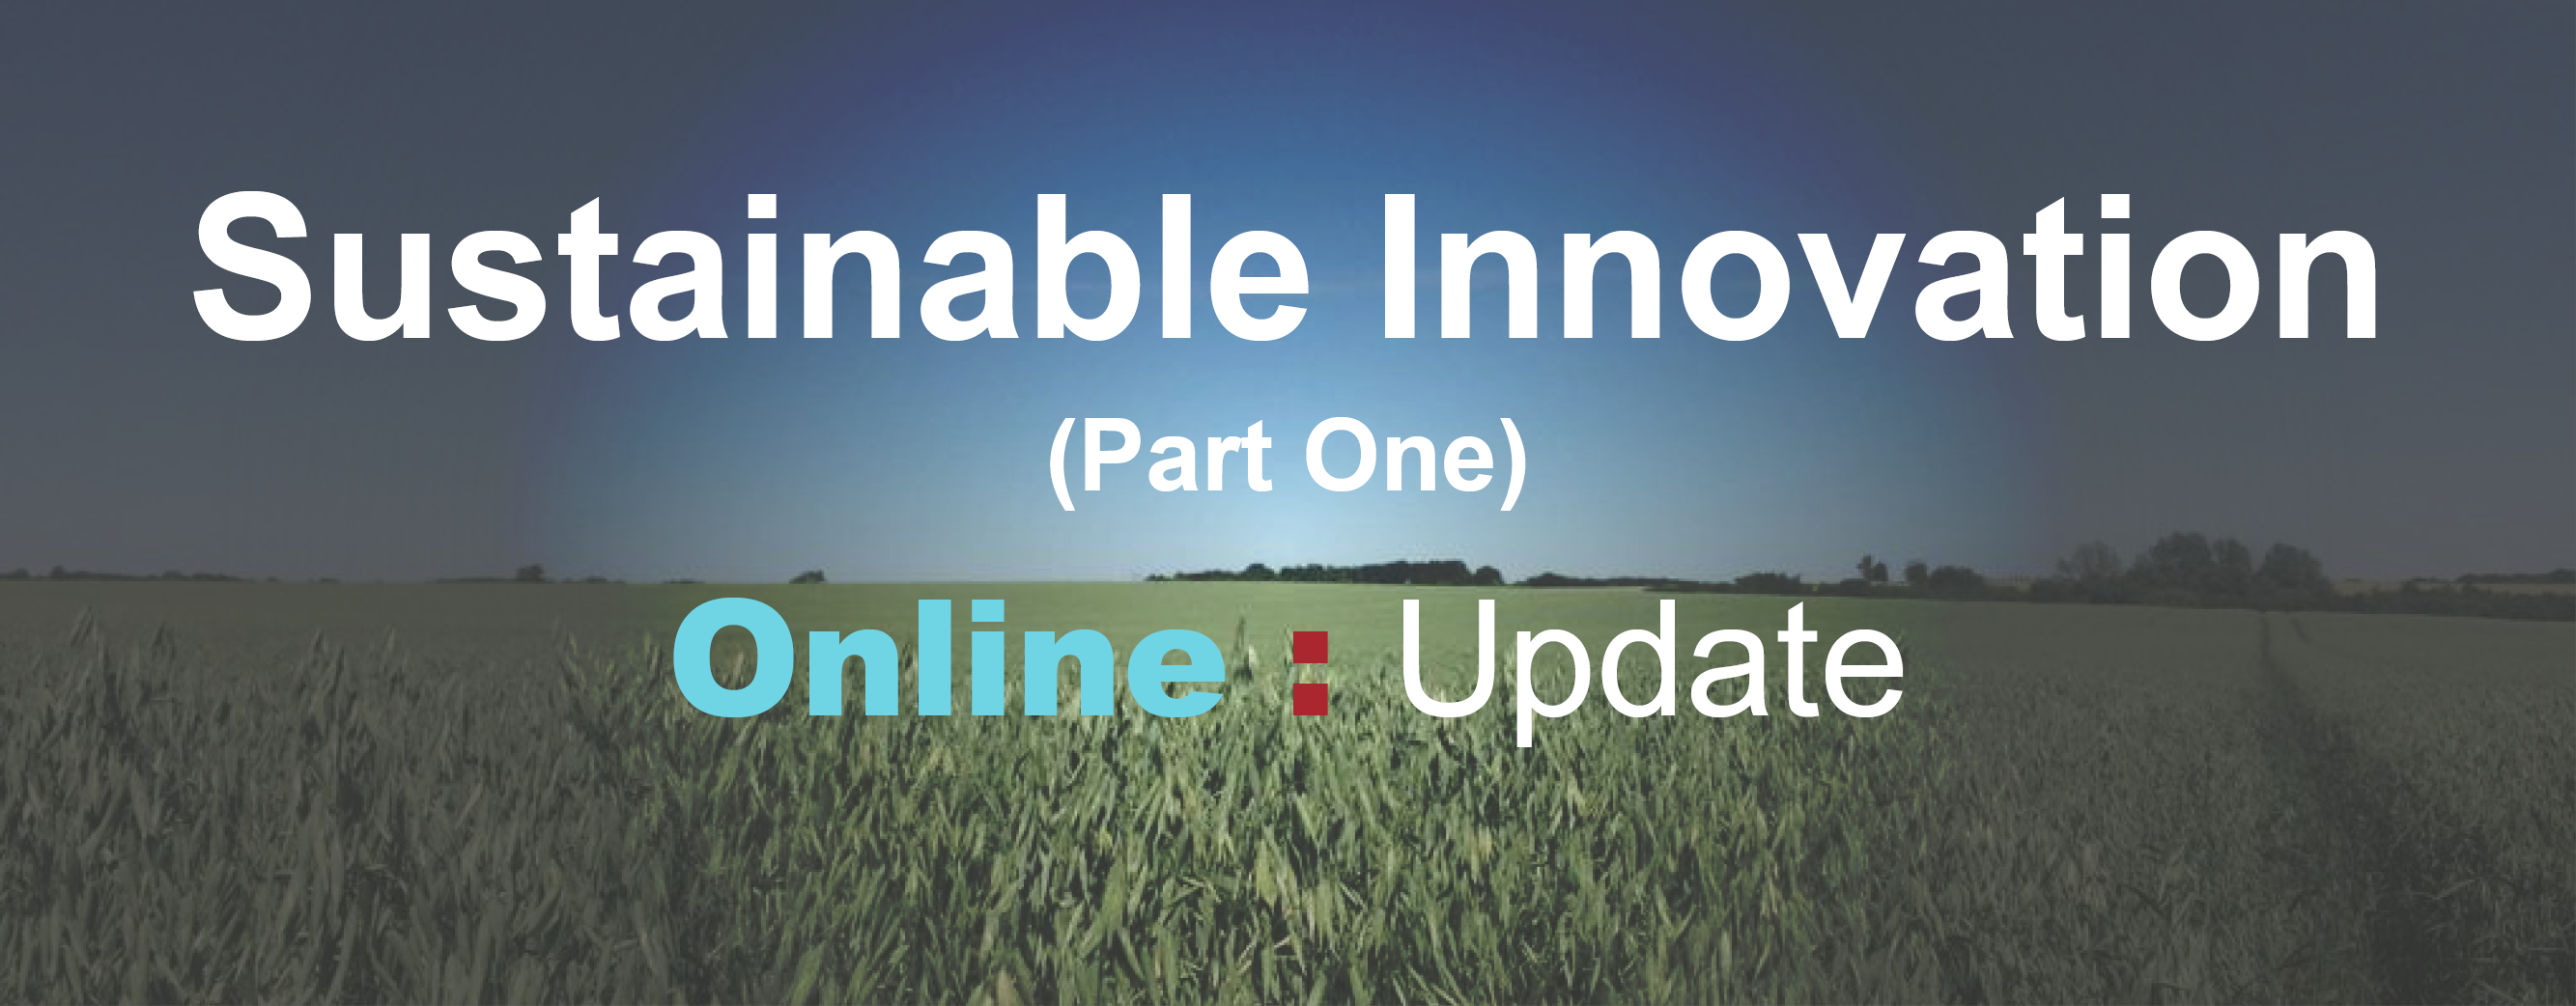 httpssustainable-innovation-part-one/